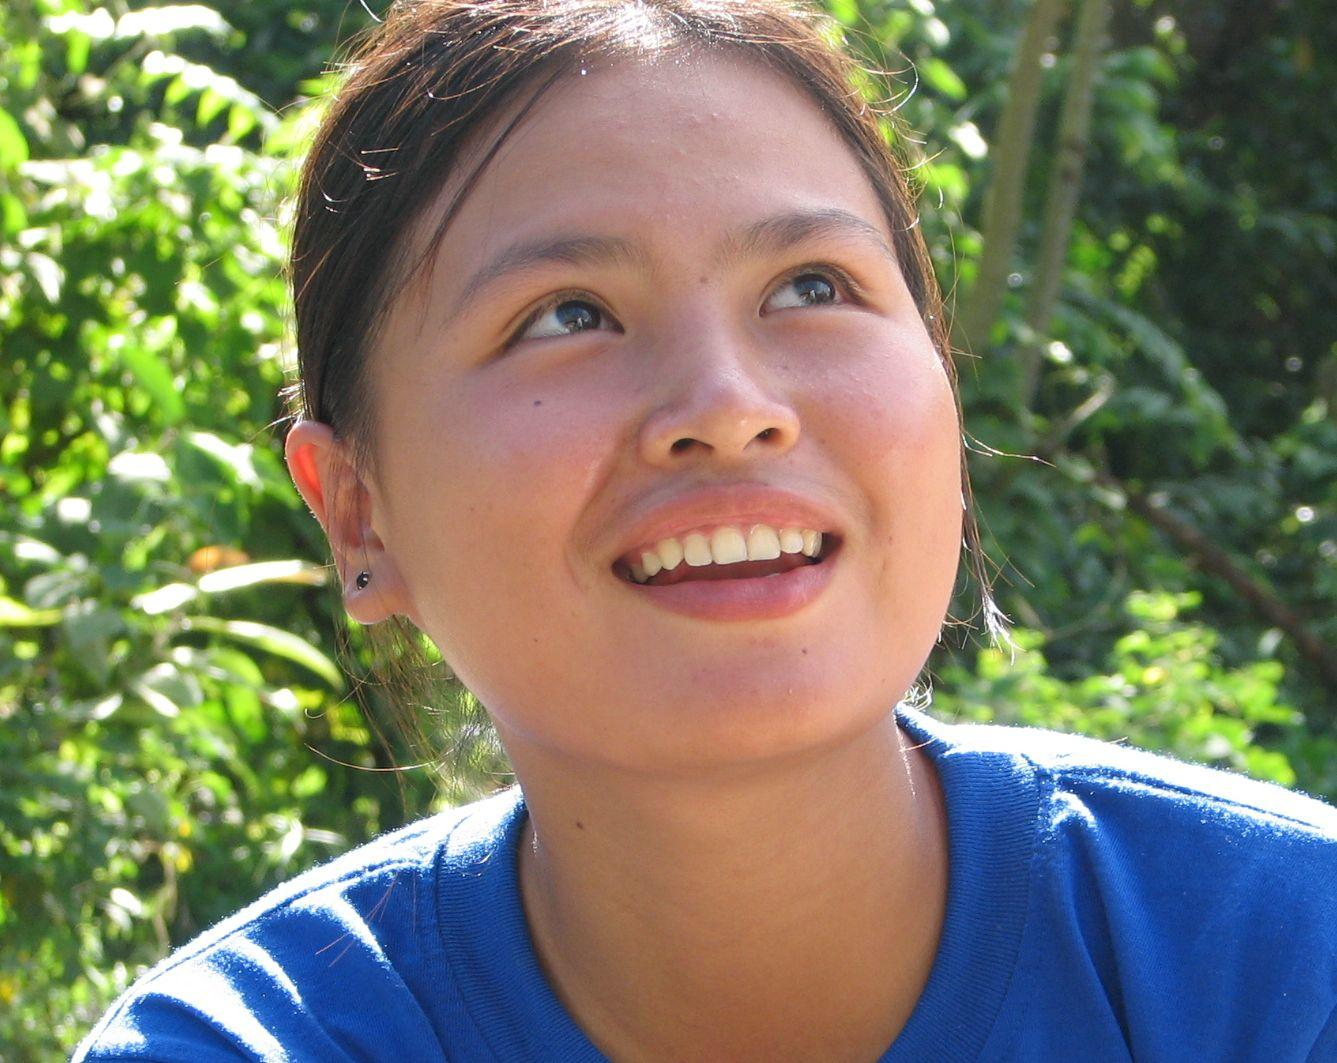 Salimandut Young Woman Cropped.jpg